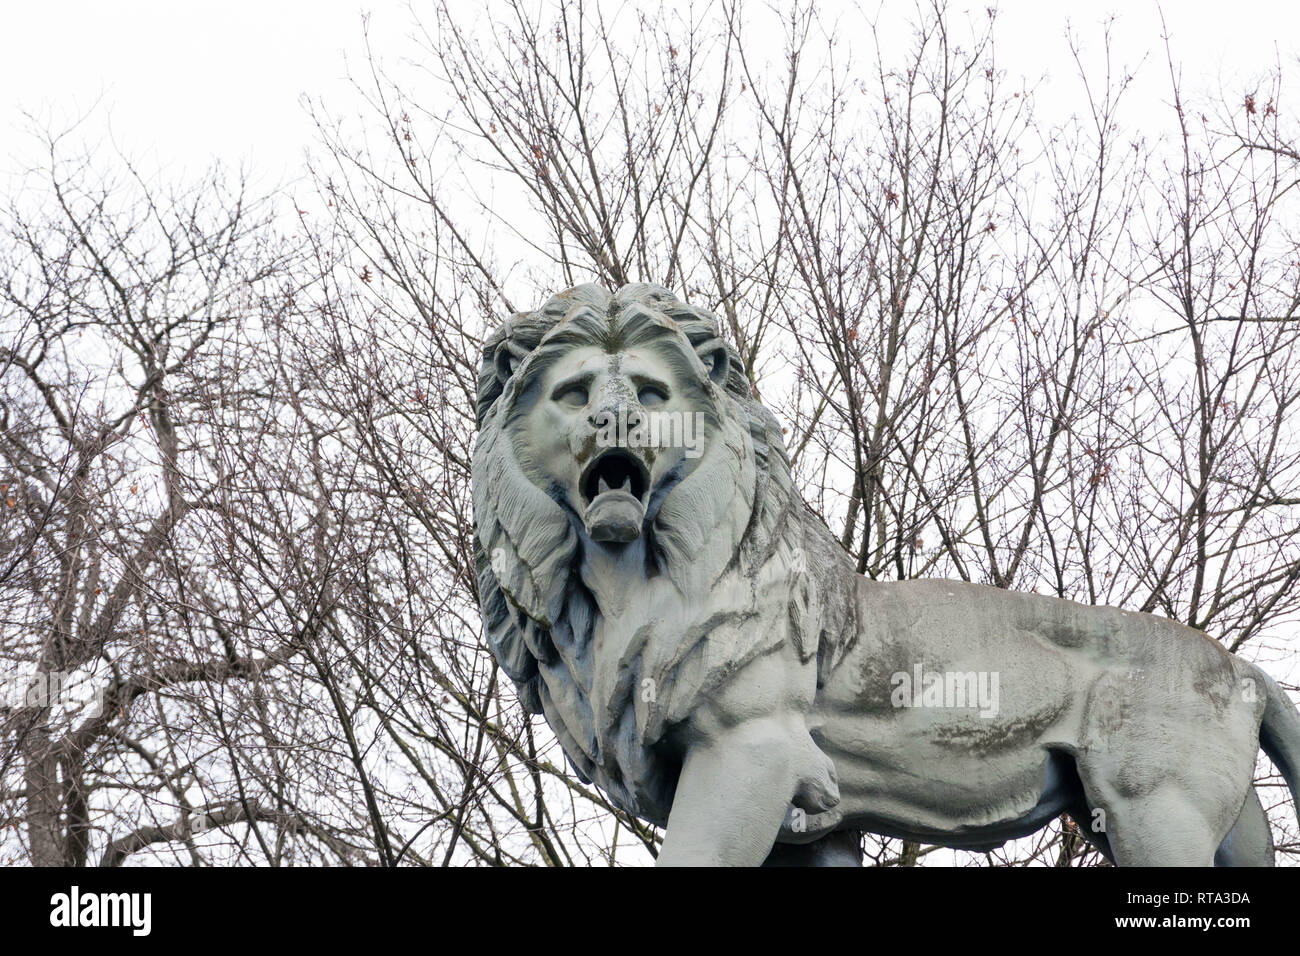 Lions Statue at the entrance of the Royal park in Brussels Belgium Stock Photo